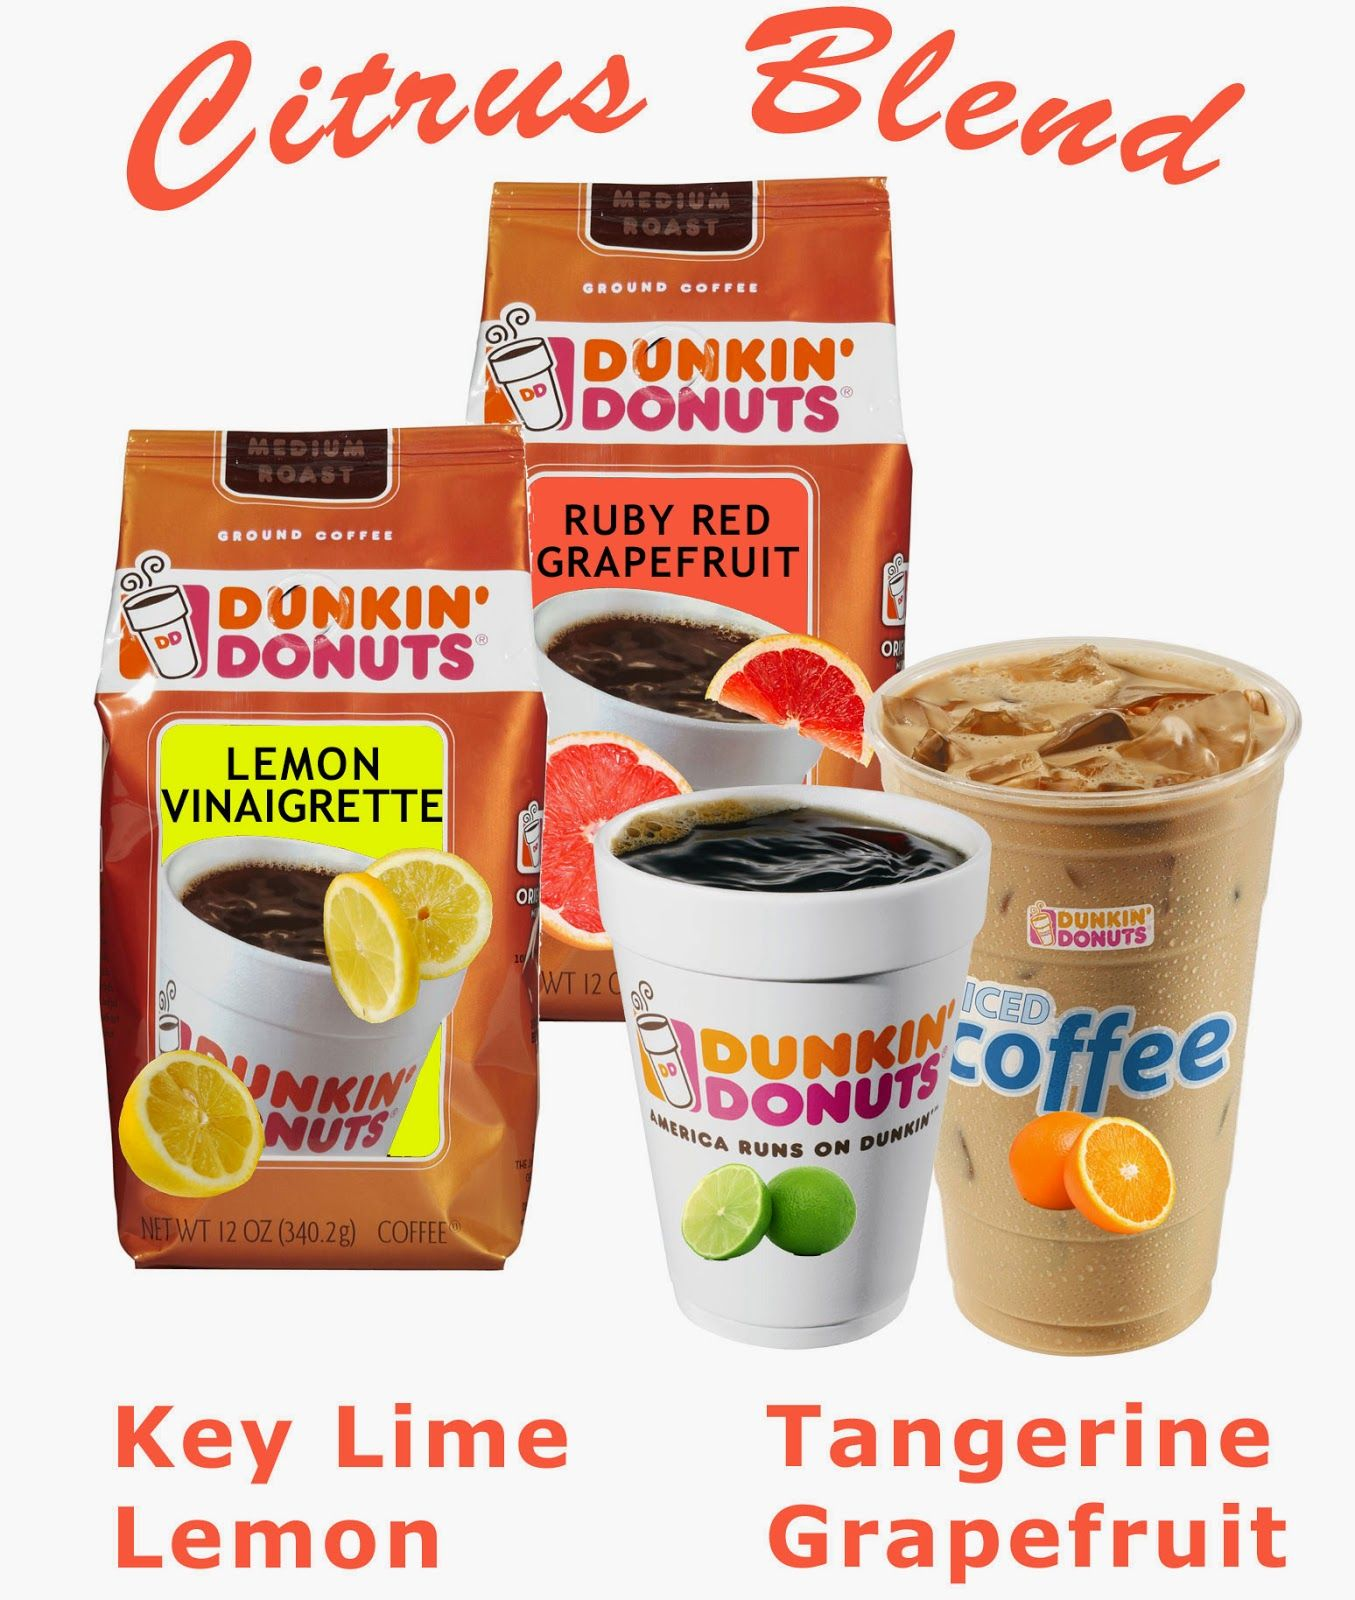 Dunkin Donuts new coffee flavors for Summer Coffee